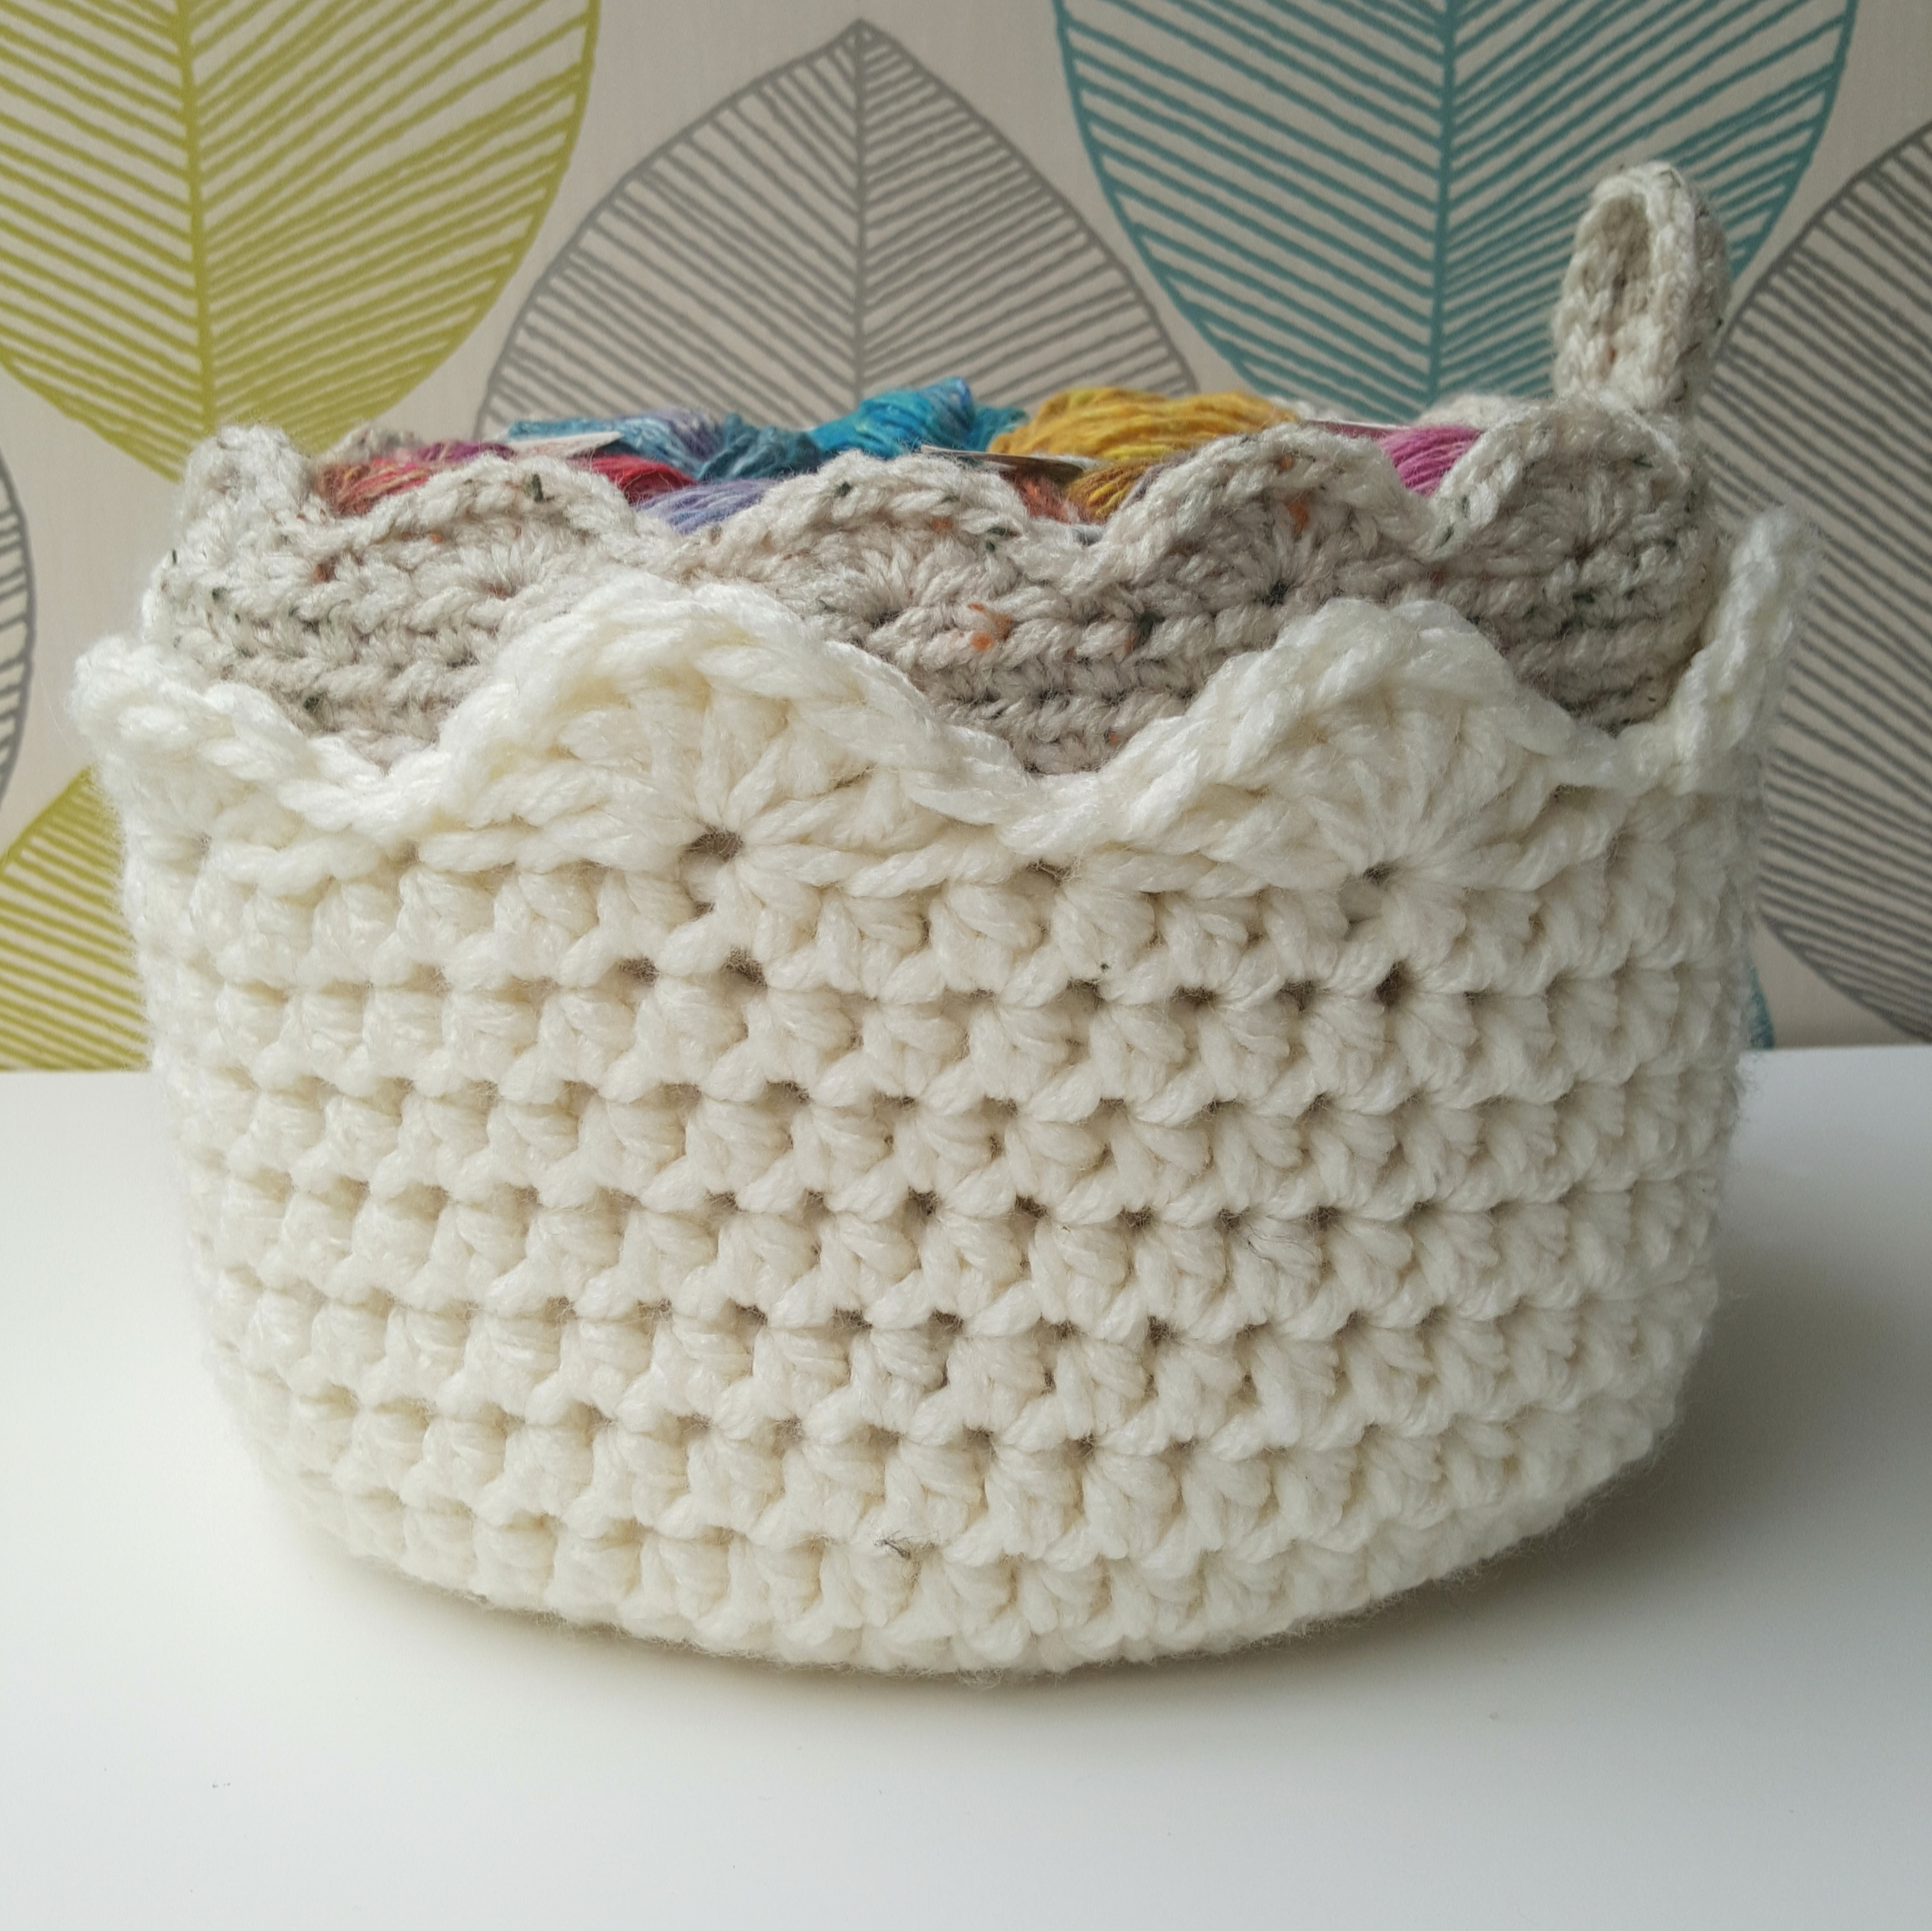 Stacked Crochet Baskets With Scallop Edgings